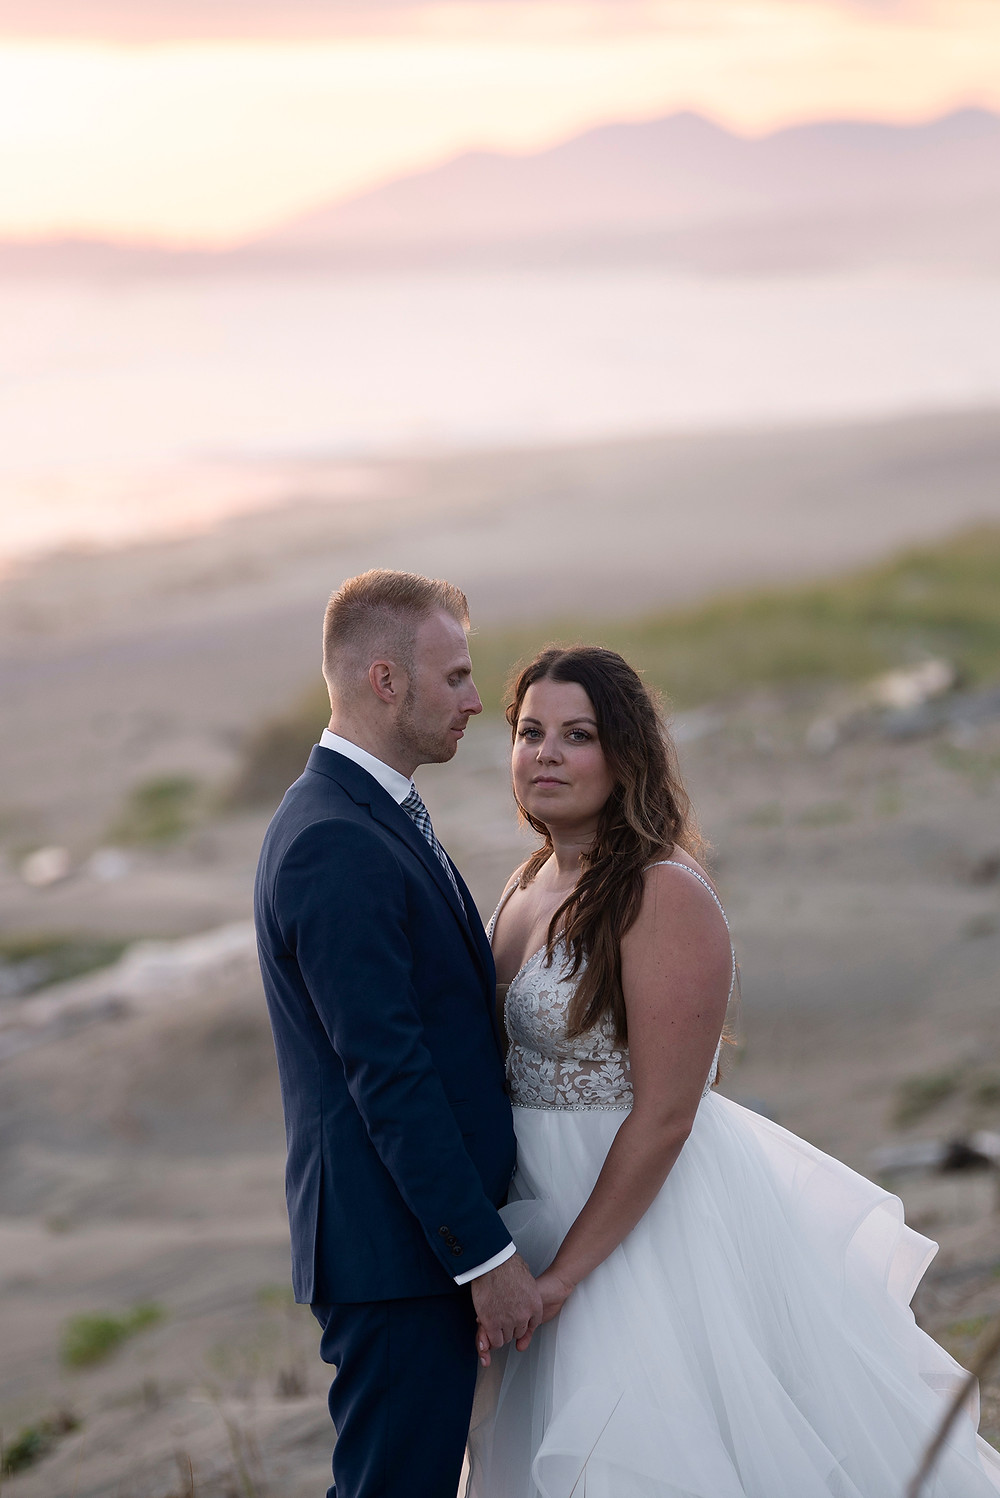 Sunset wedding photography in Tofino. Photographed by Kaitlyn Shea.